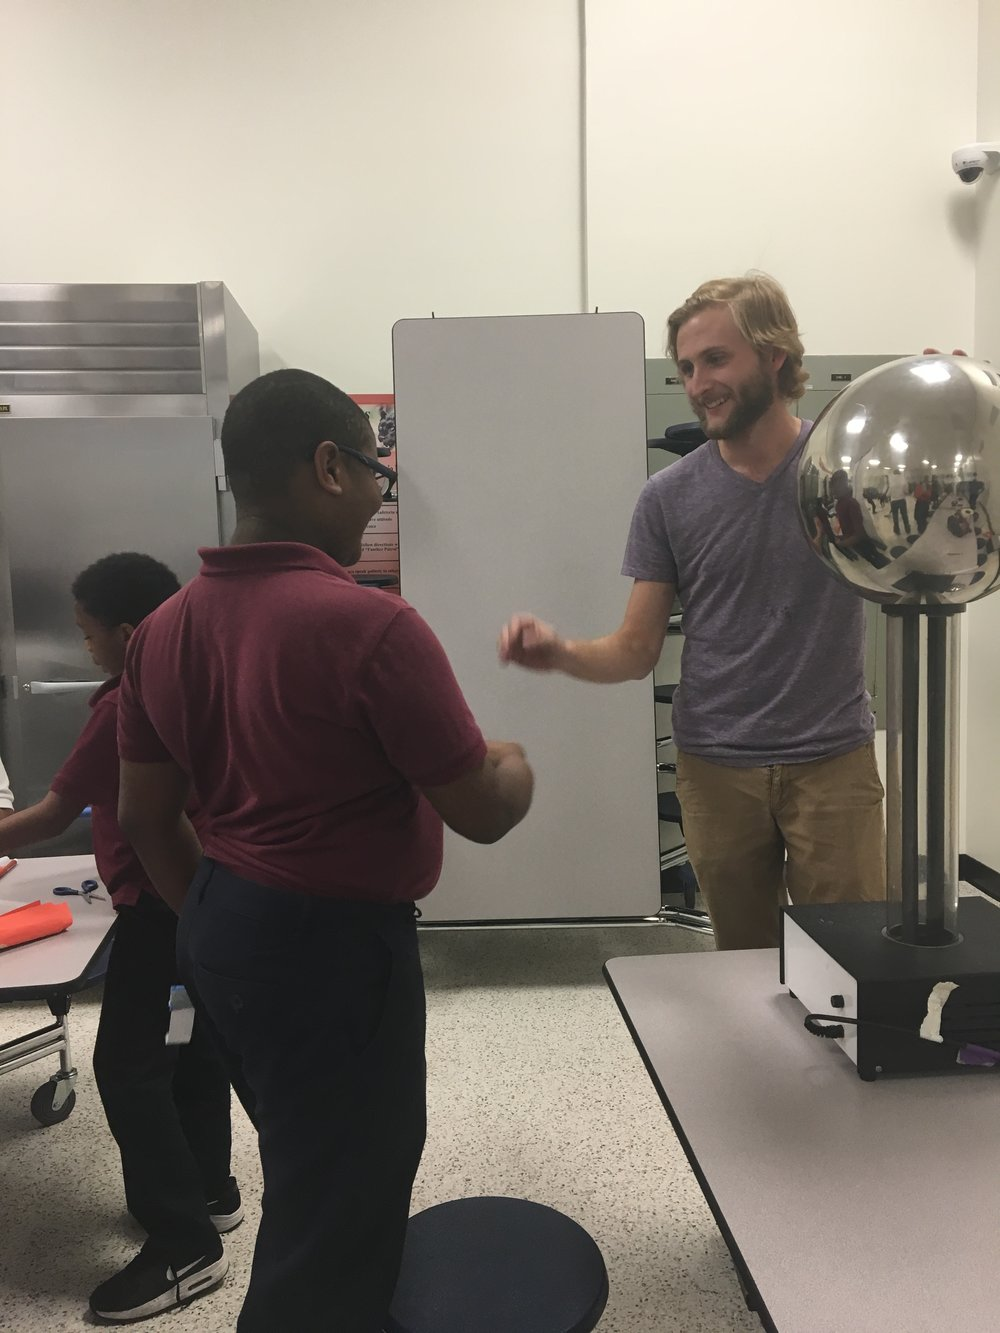 Anthony Ficklin conducting a physics demonstration.